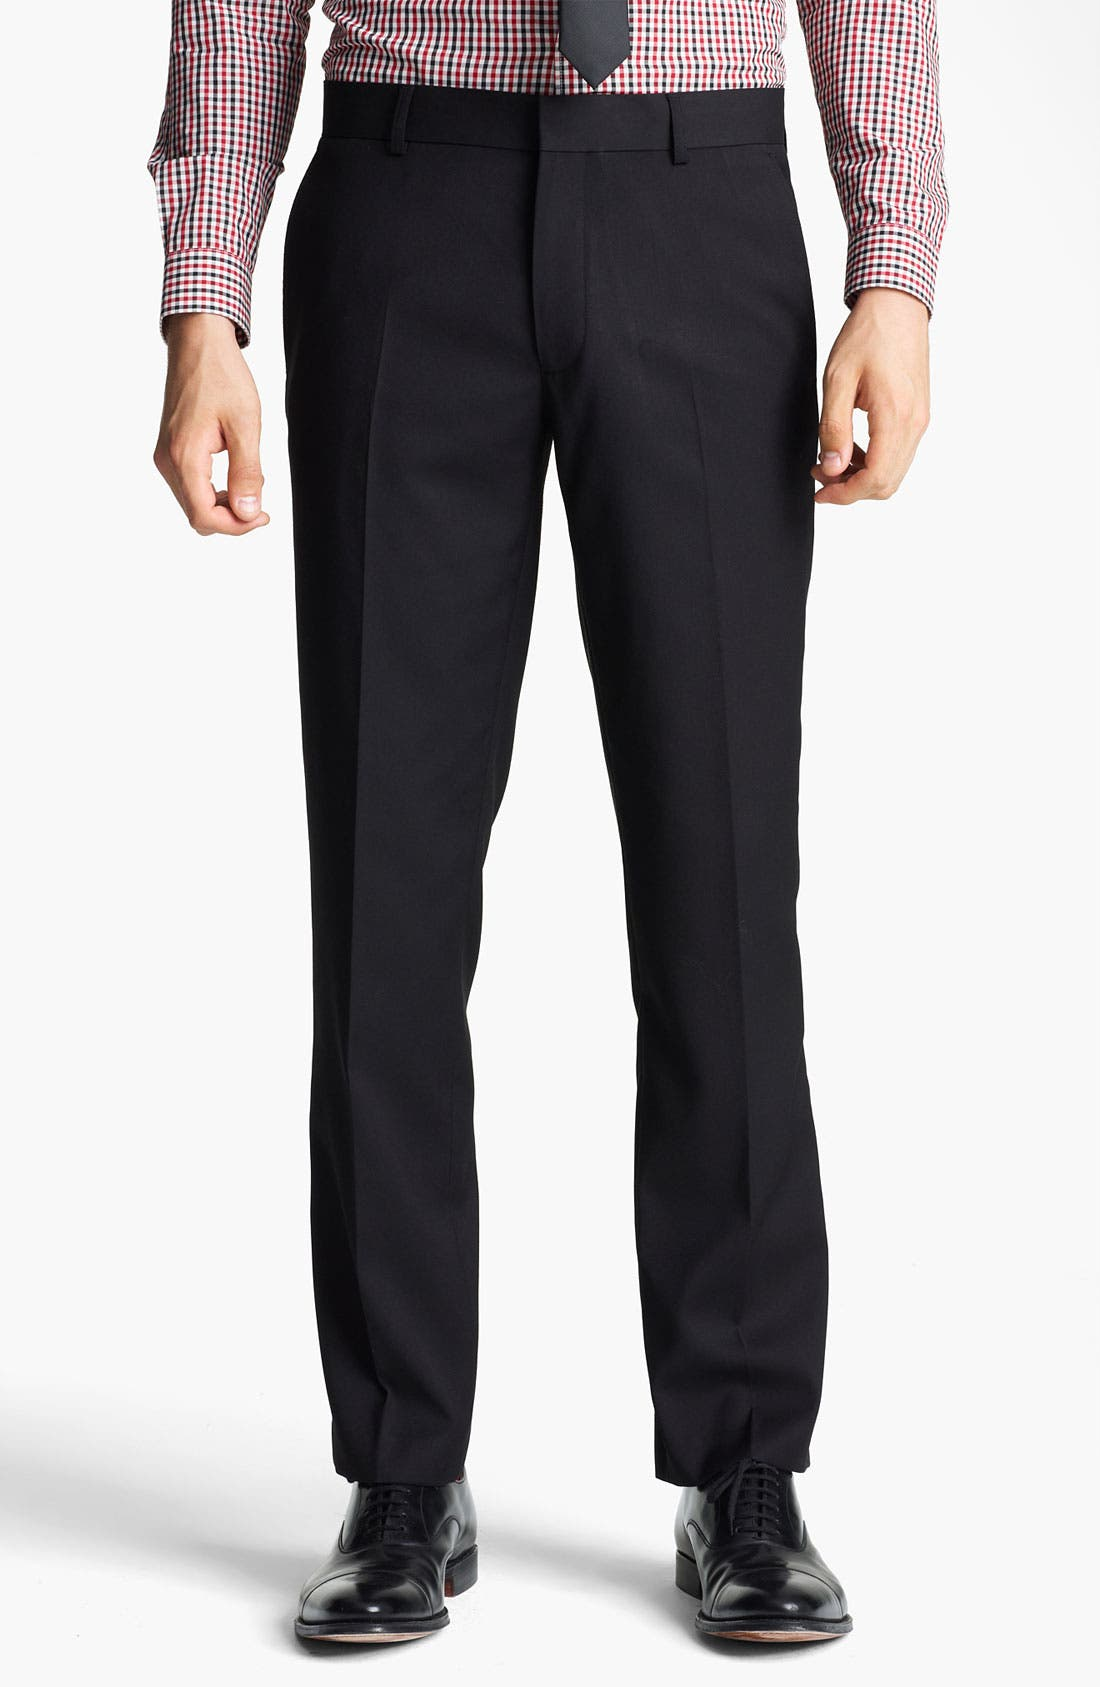 Alternate Image 1 Selected - Topman Slim Fit Flat Front Trousers